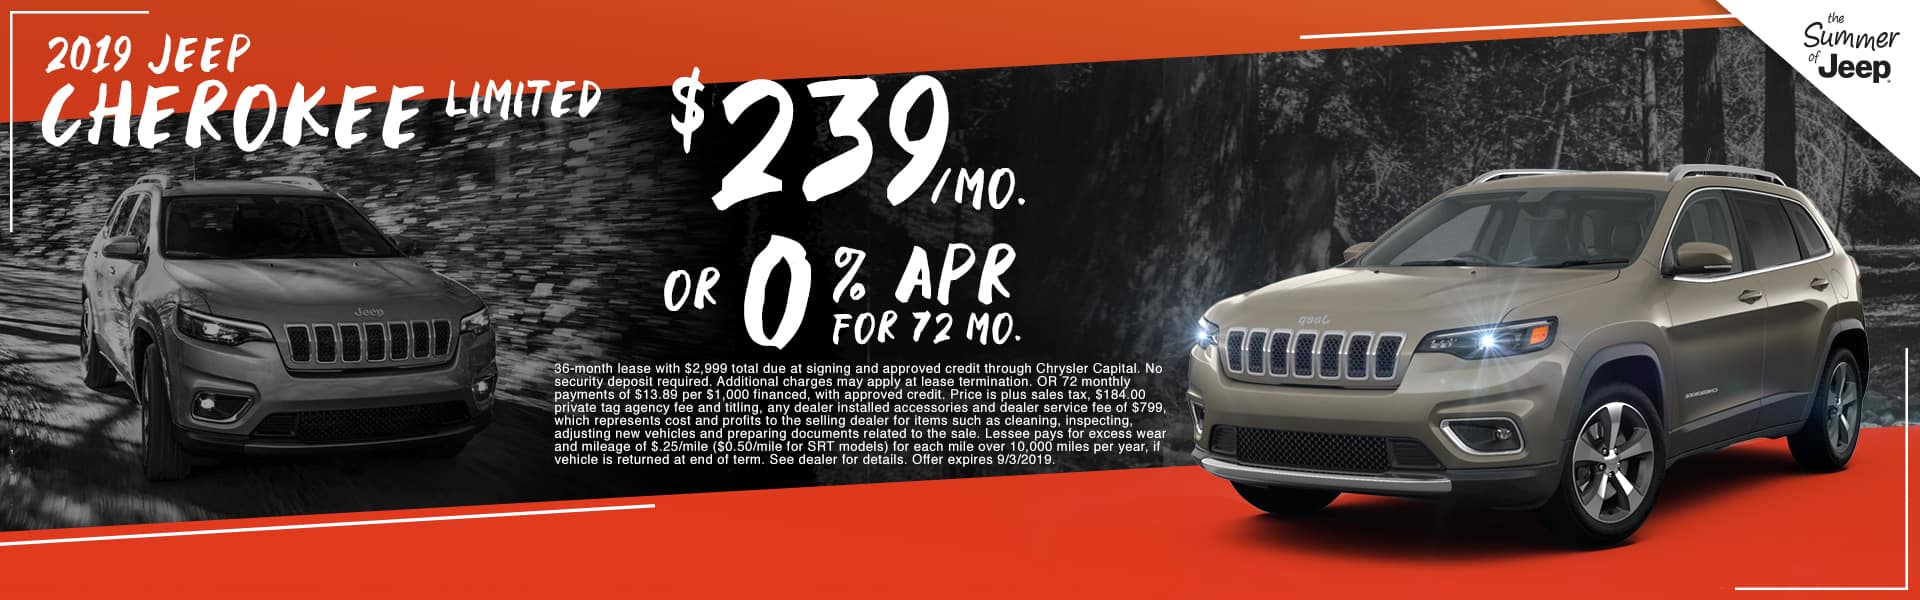 2019 Jeep Cherokee Limited | $239 Per Month OR 0% APR For 72 Months